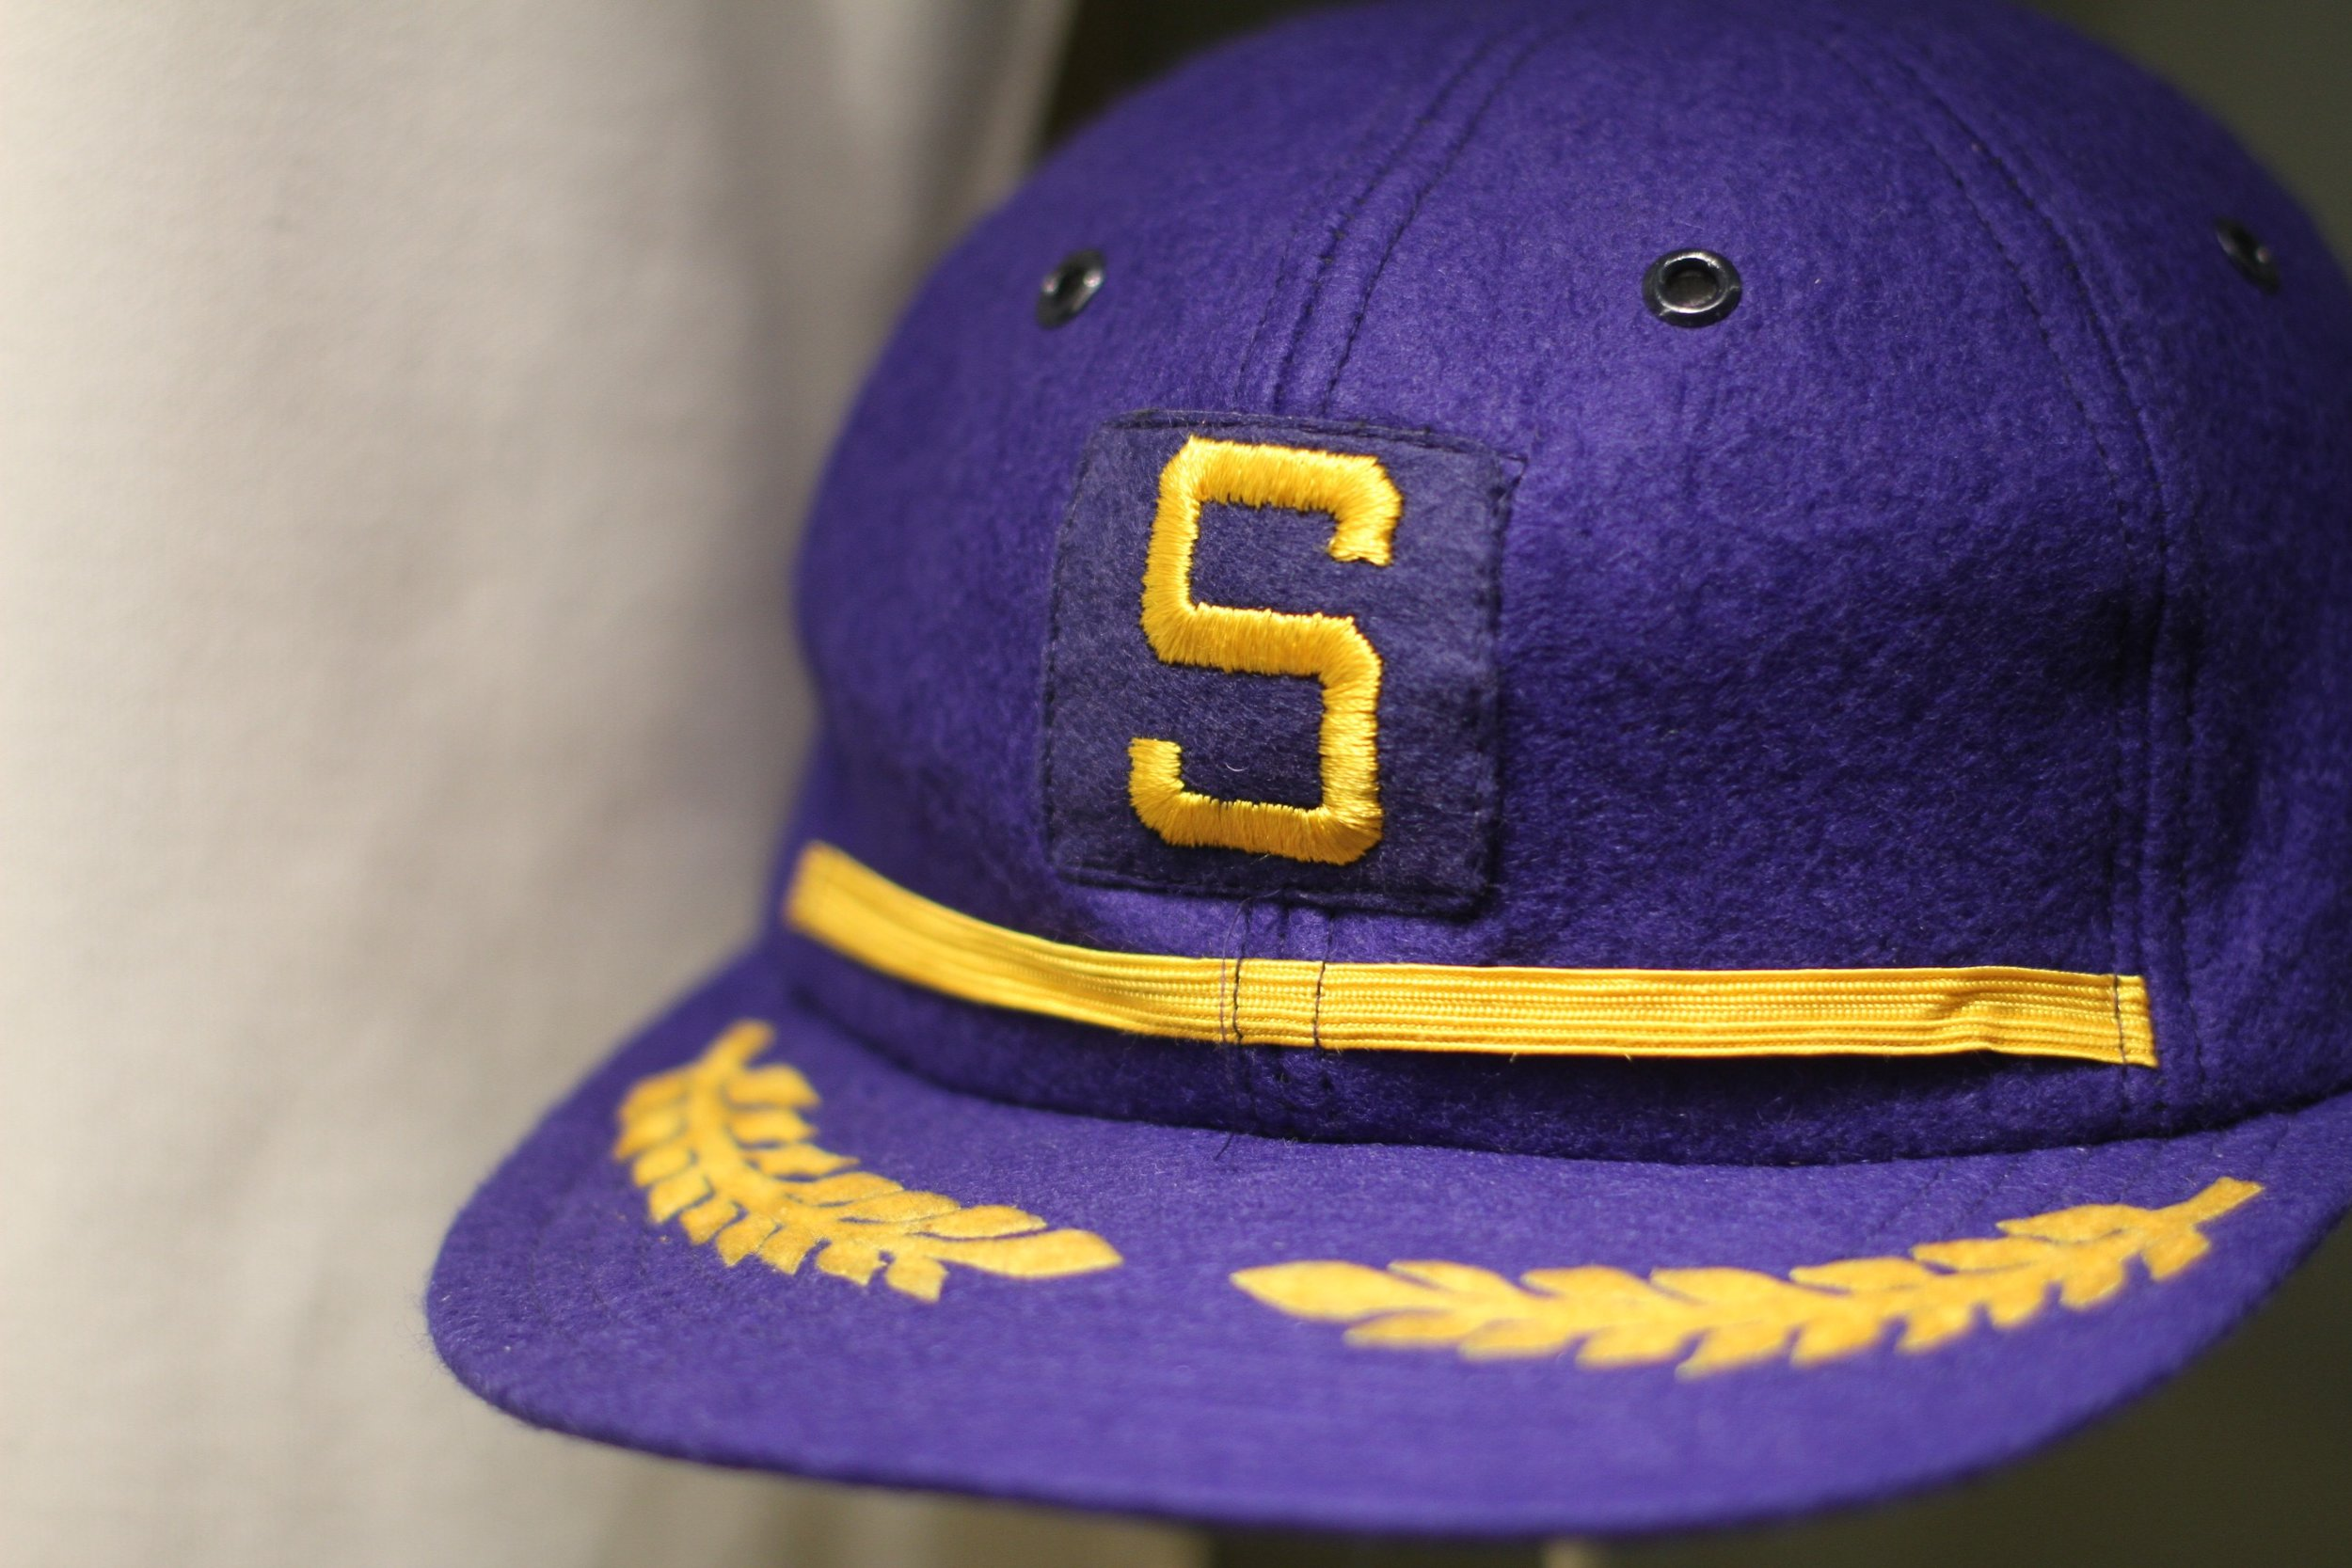 1969 Seattle Pilots hat. One year of Major League Baseball in Seattle before the franchise was moved to Milwaukee to become the Brewers.